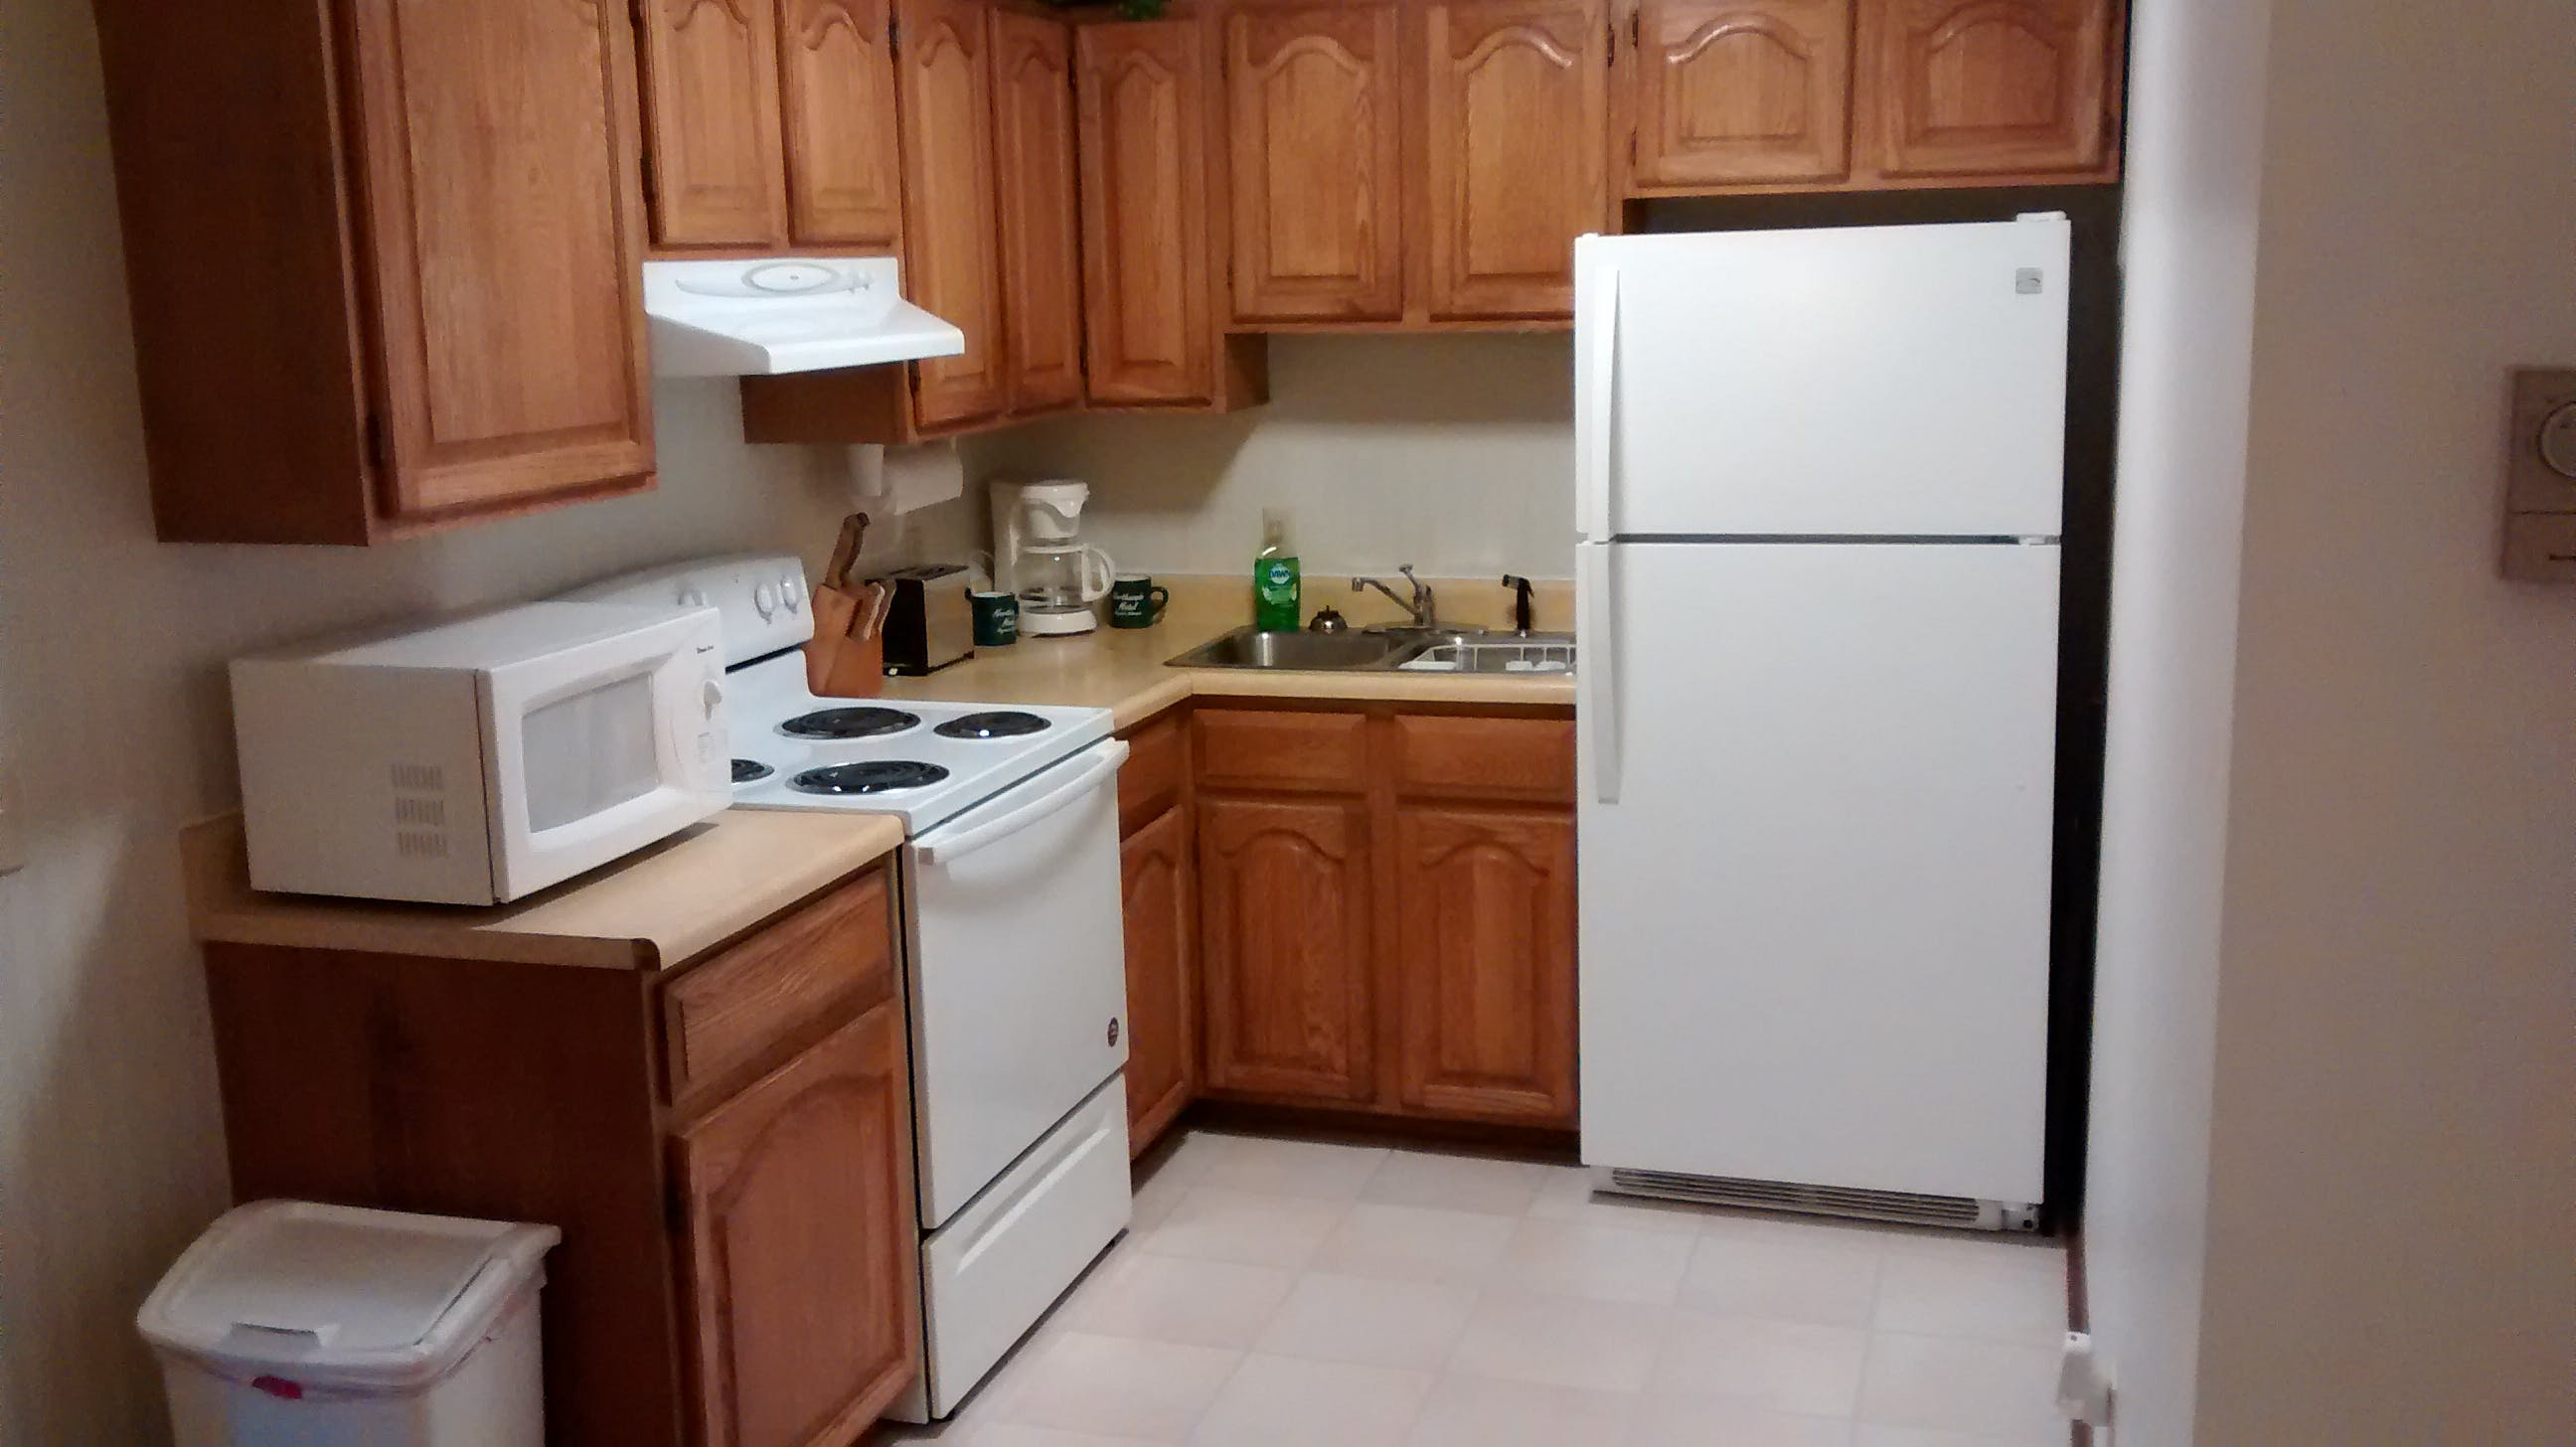 Kitchenette available